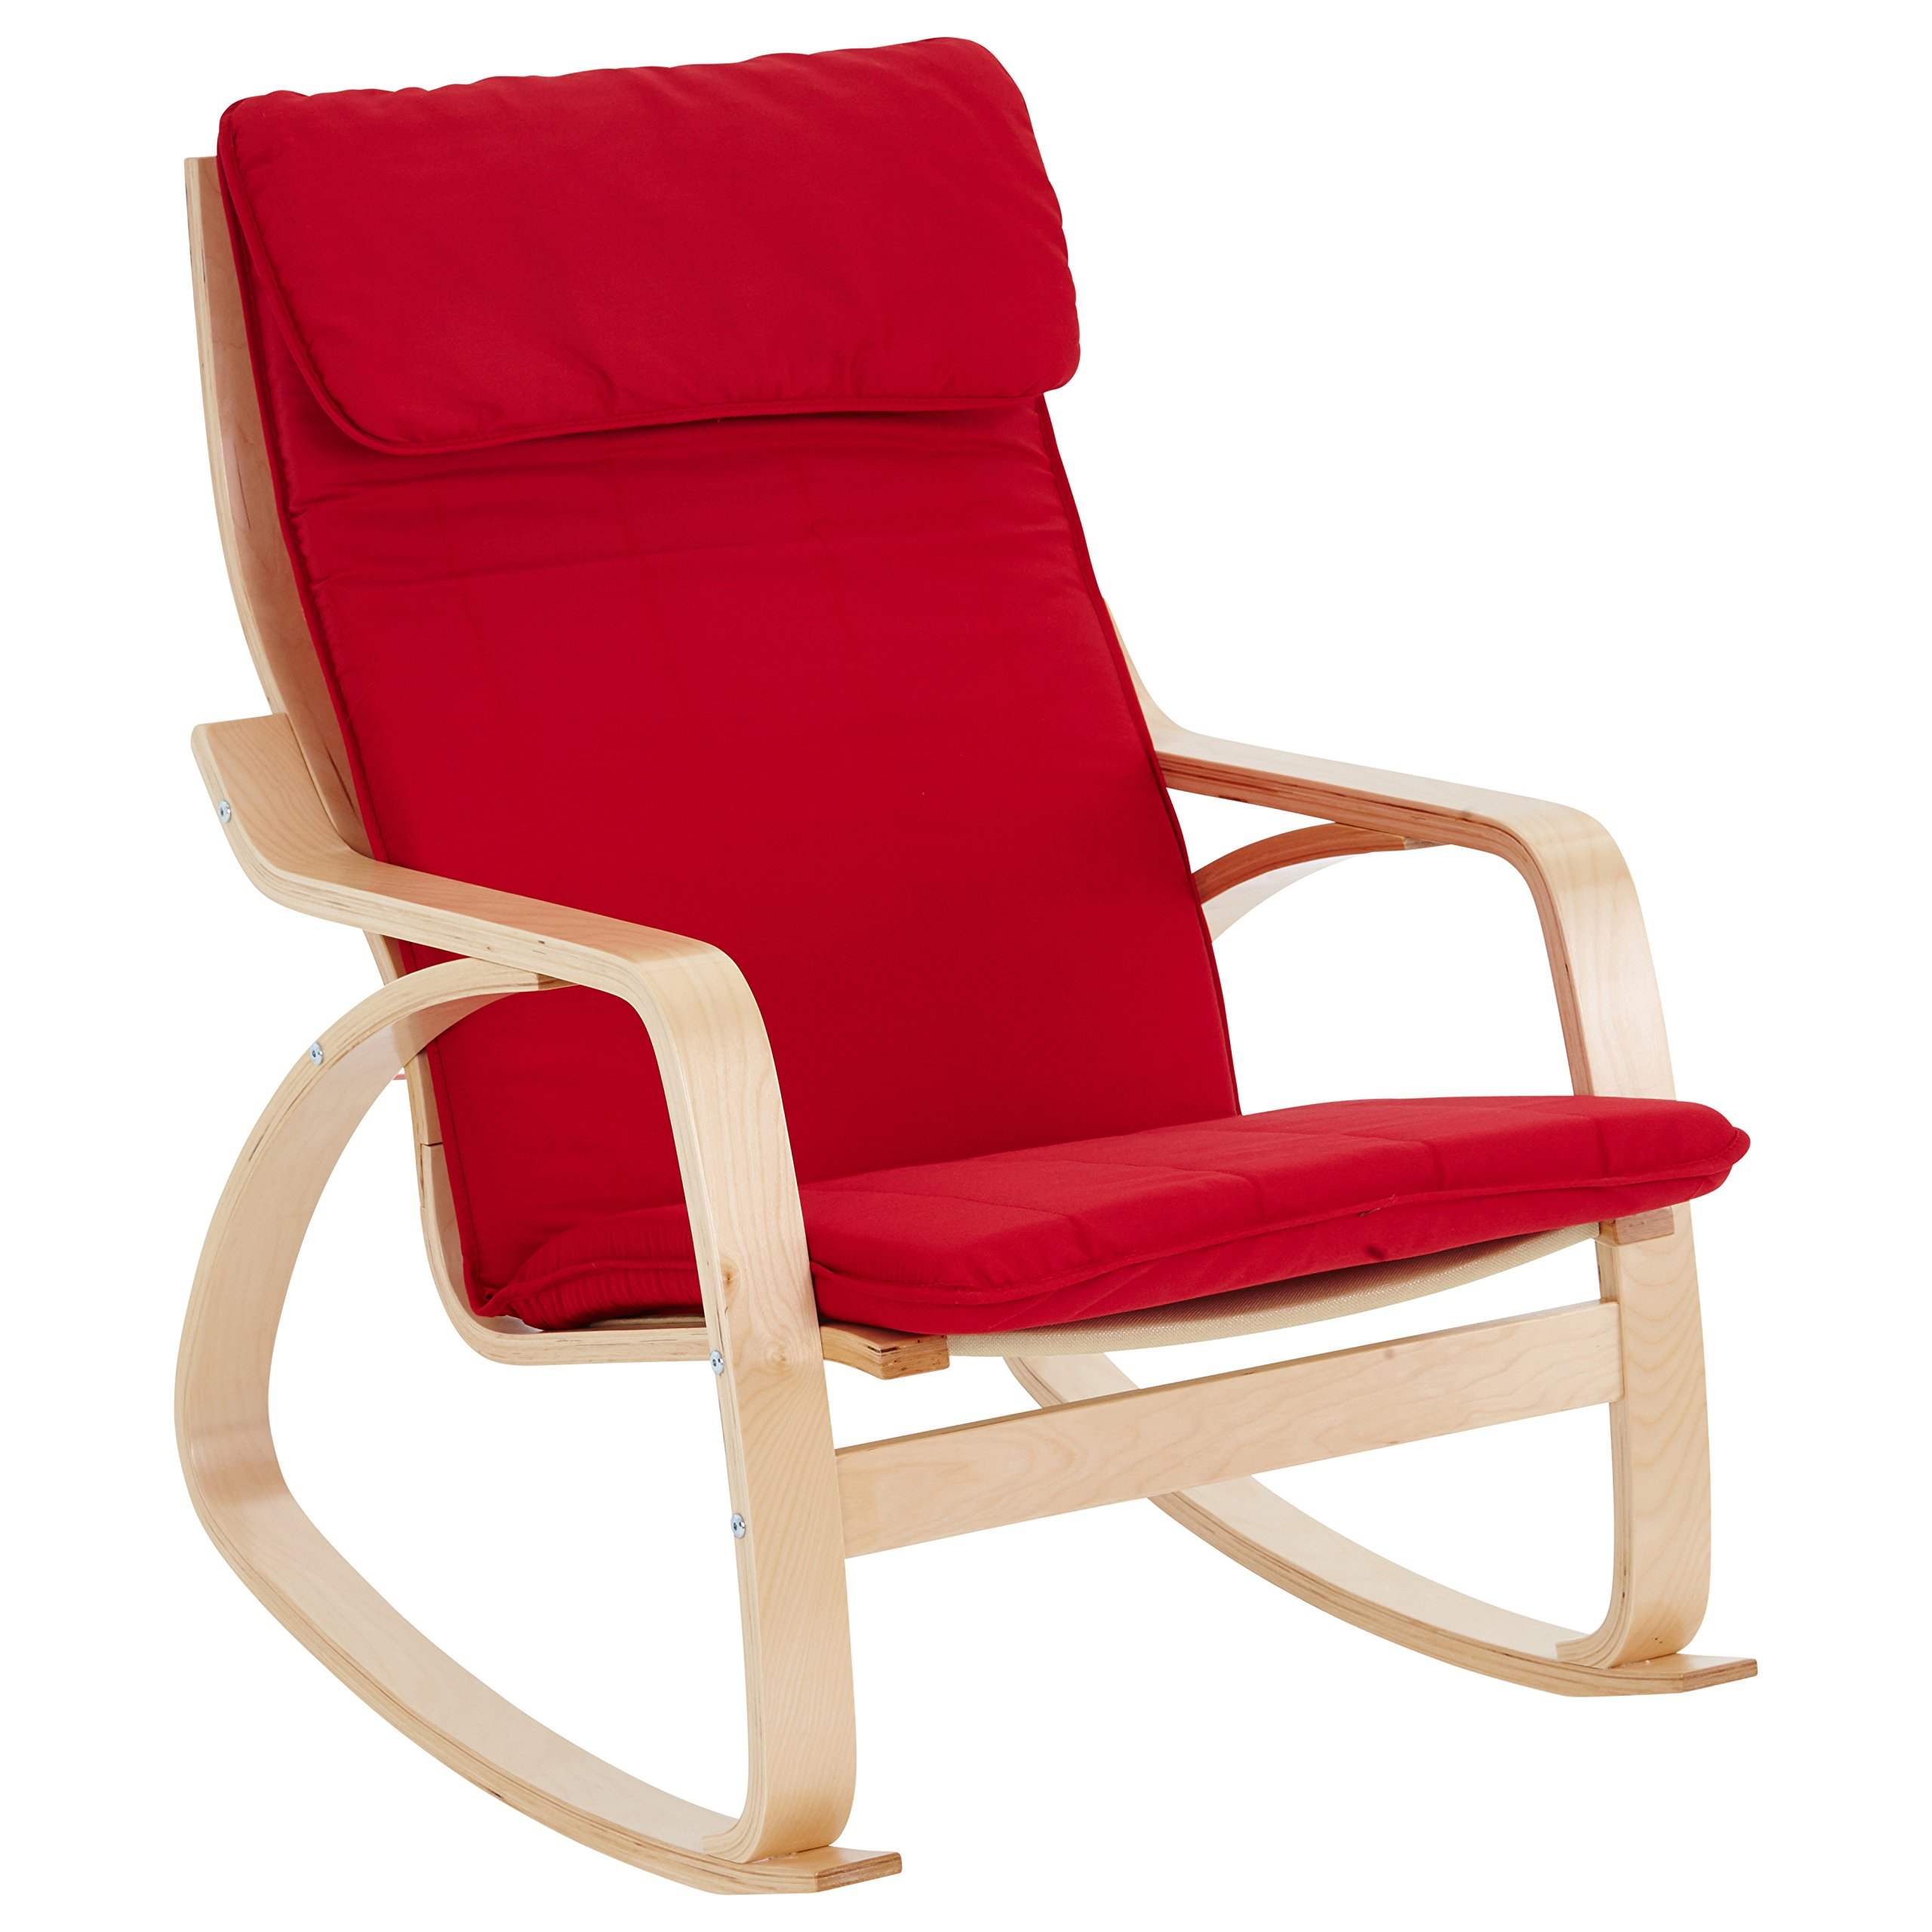 ECR4Kids Natural Bentwood Adult Rocking Chair, Birch Finish with Red Cushions